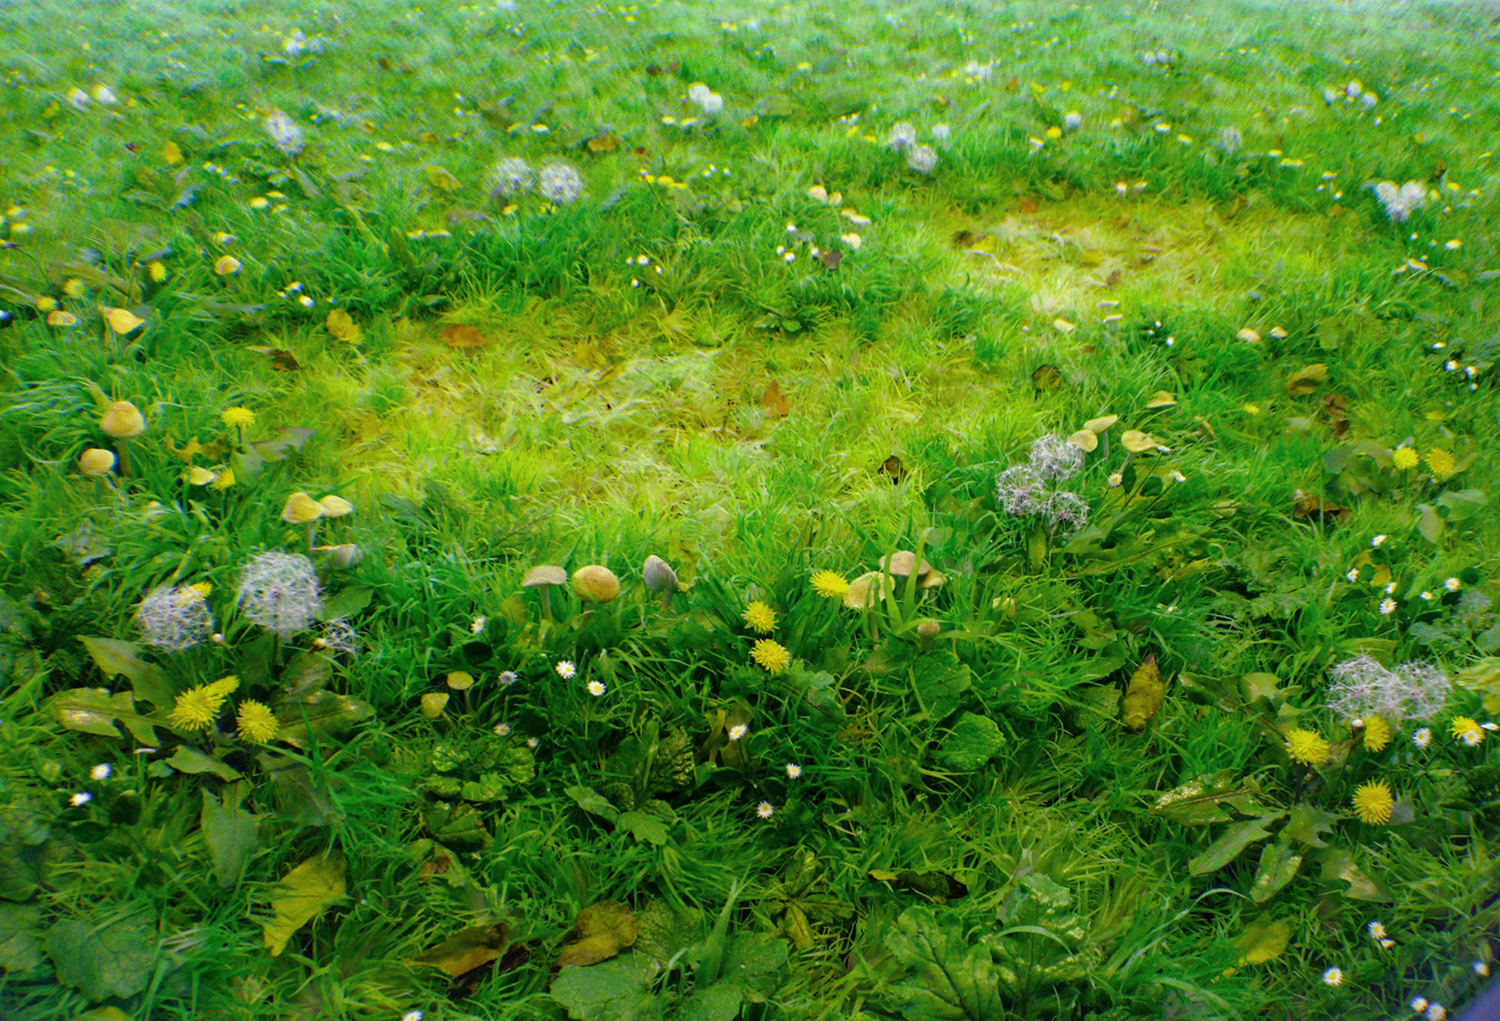 Detail: Double Fairy Ring with Dandelions, 2012